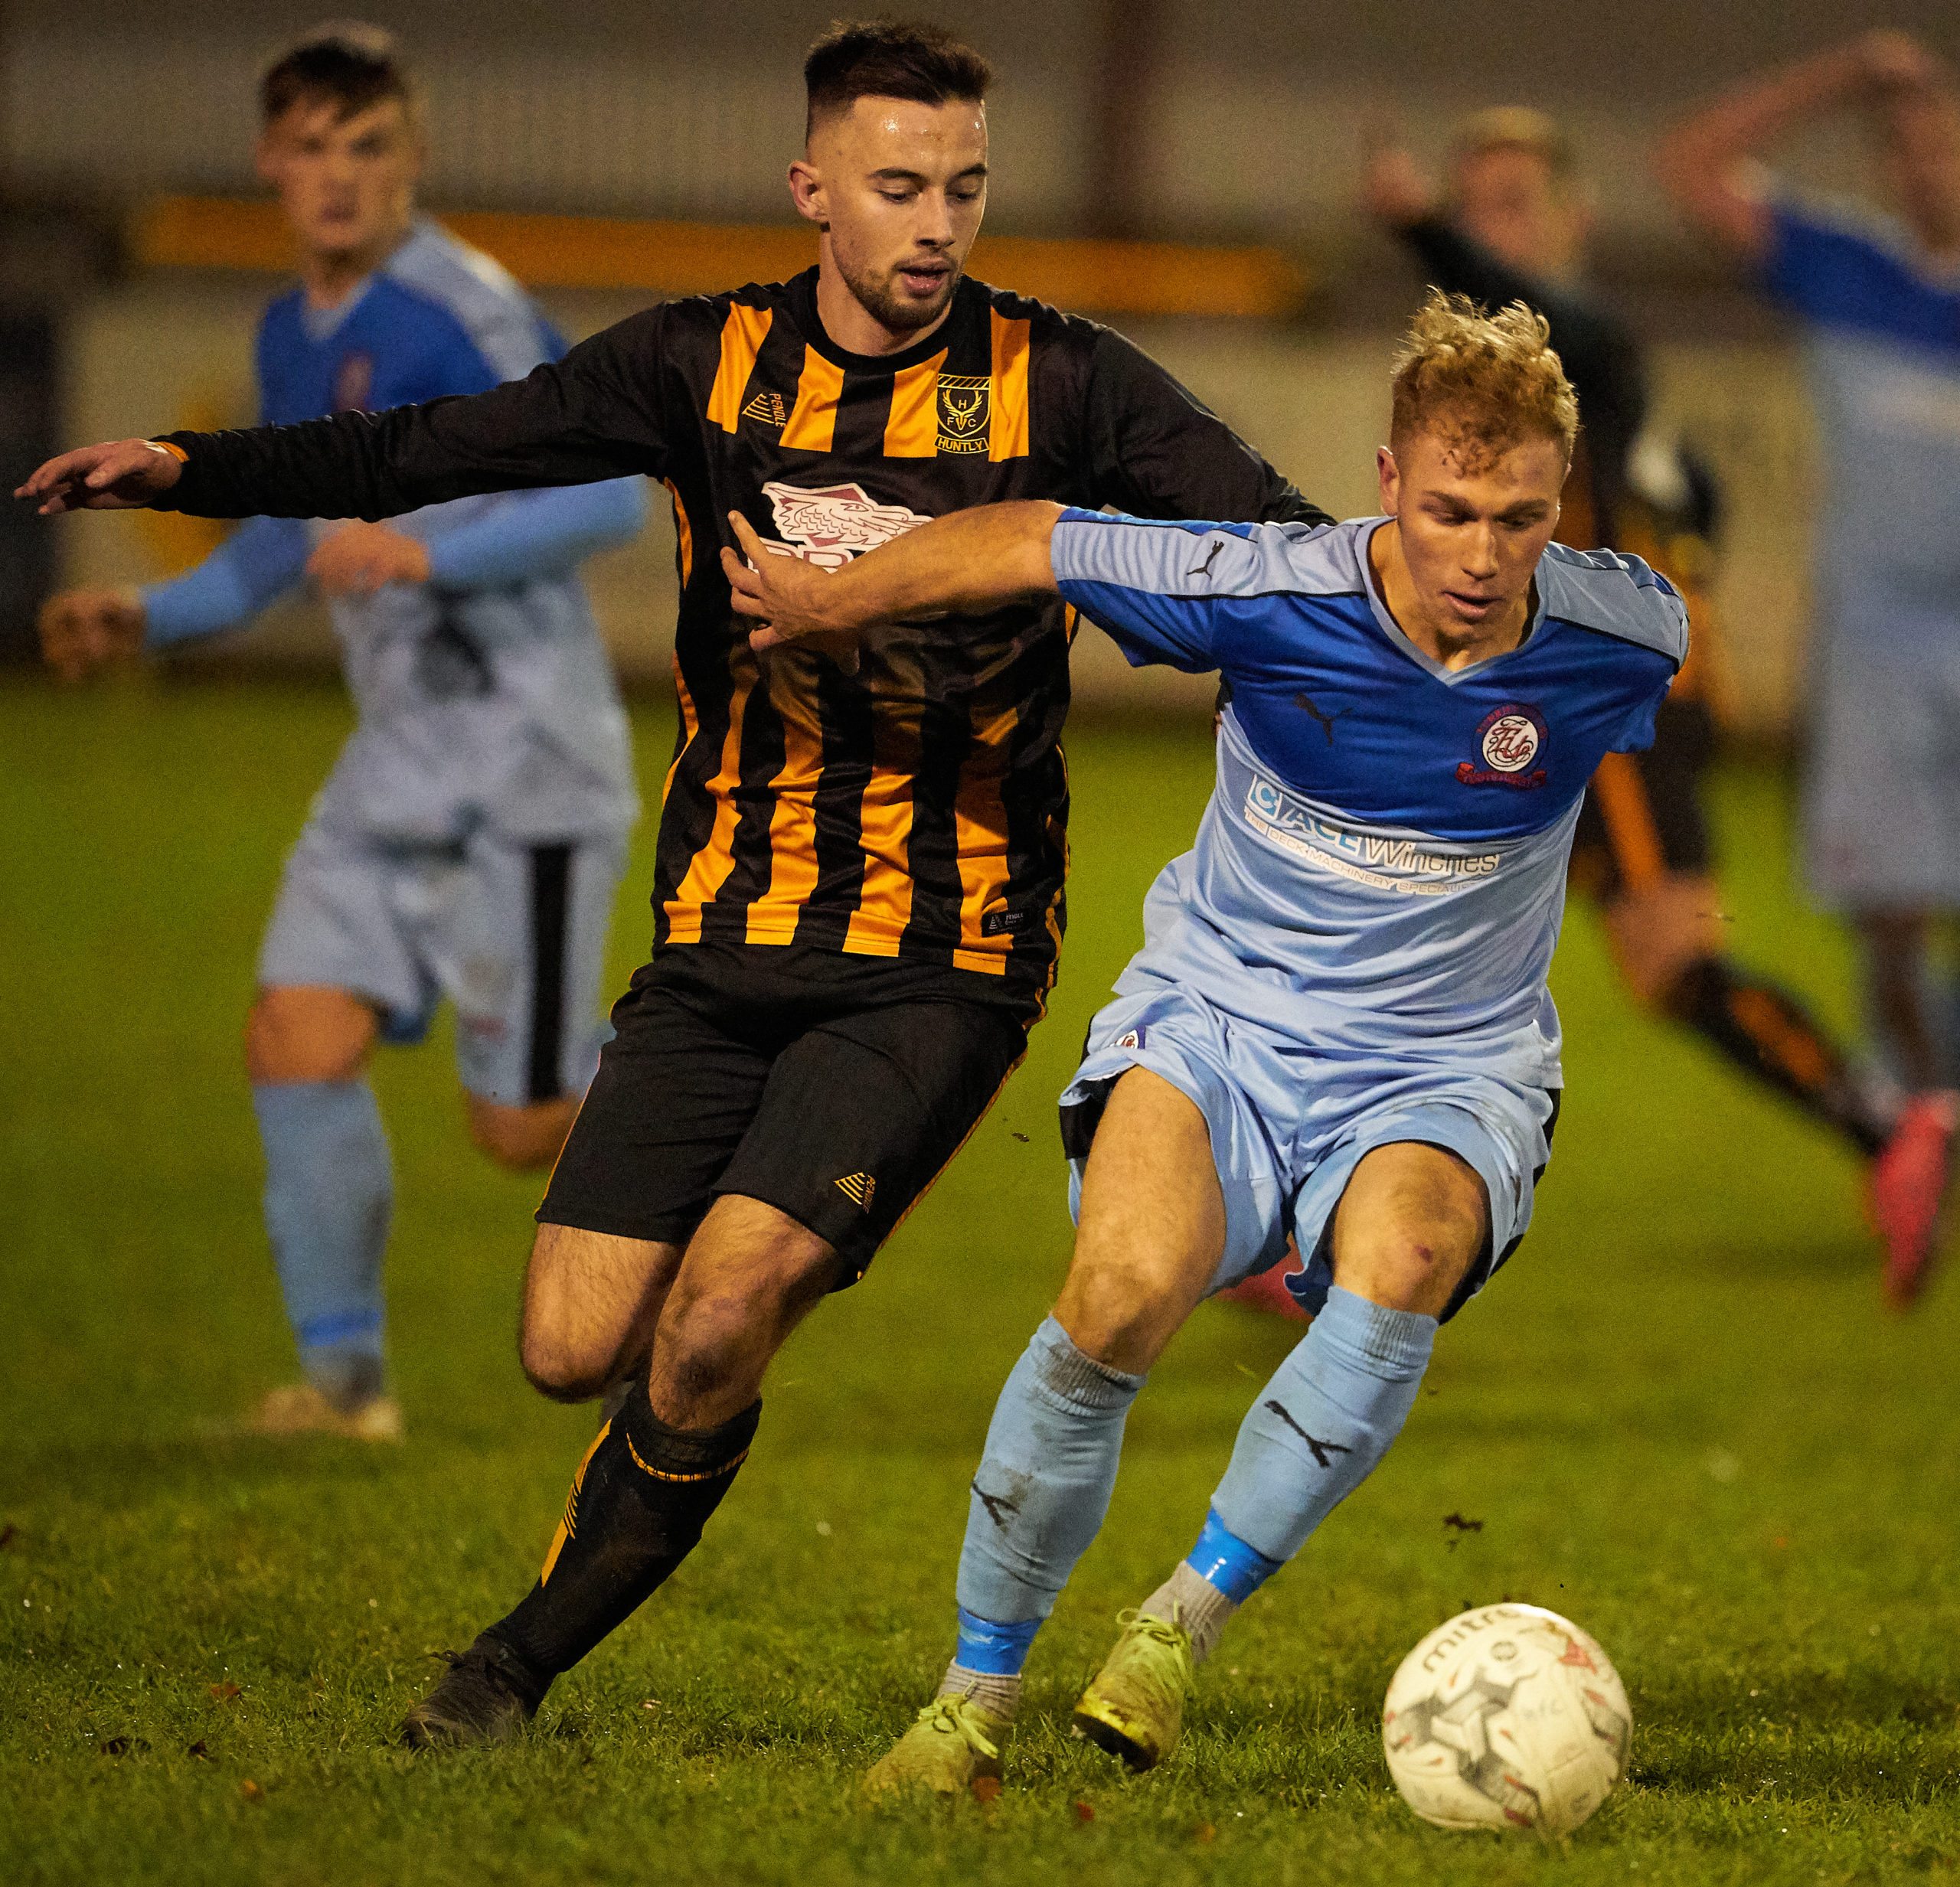 Liam MacDonald, left, in action for Huntly